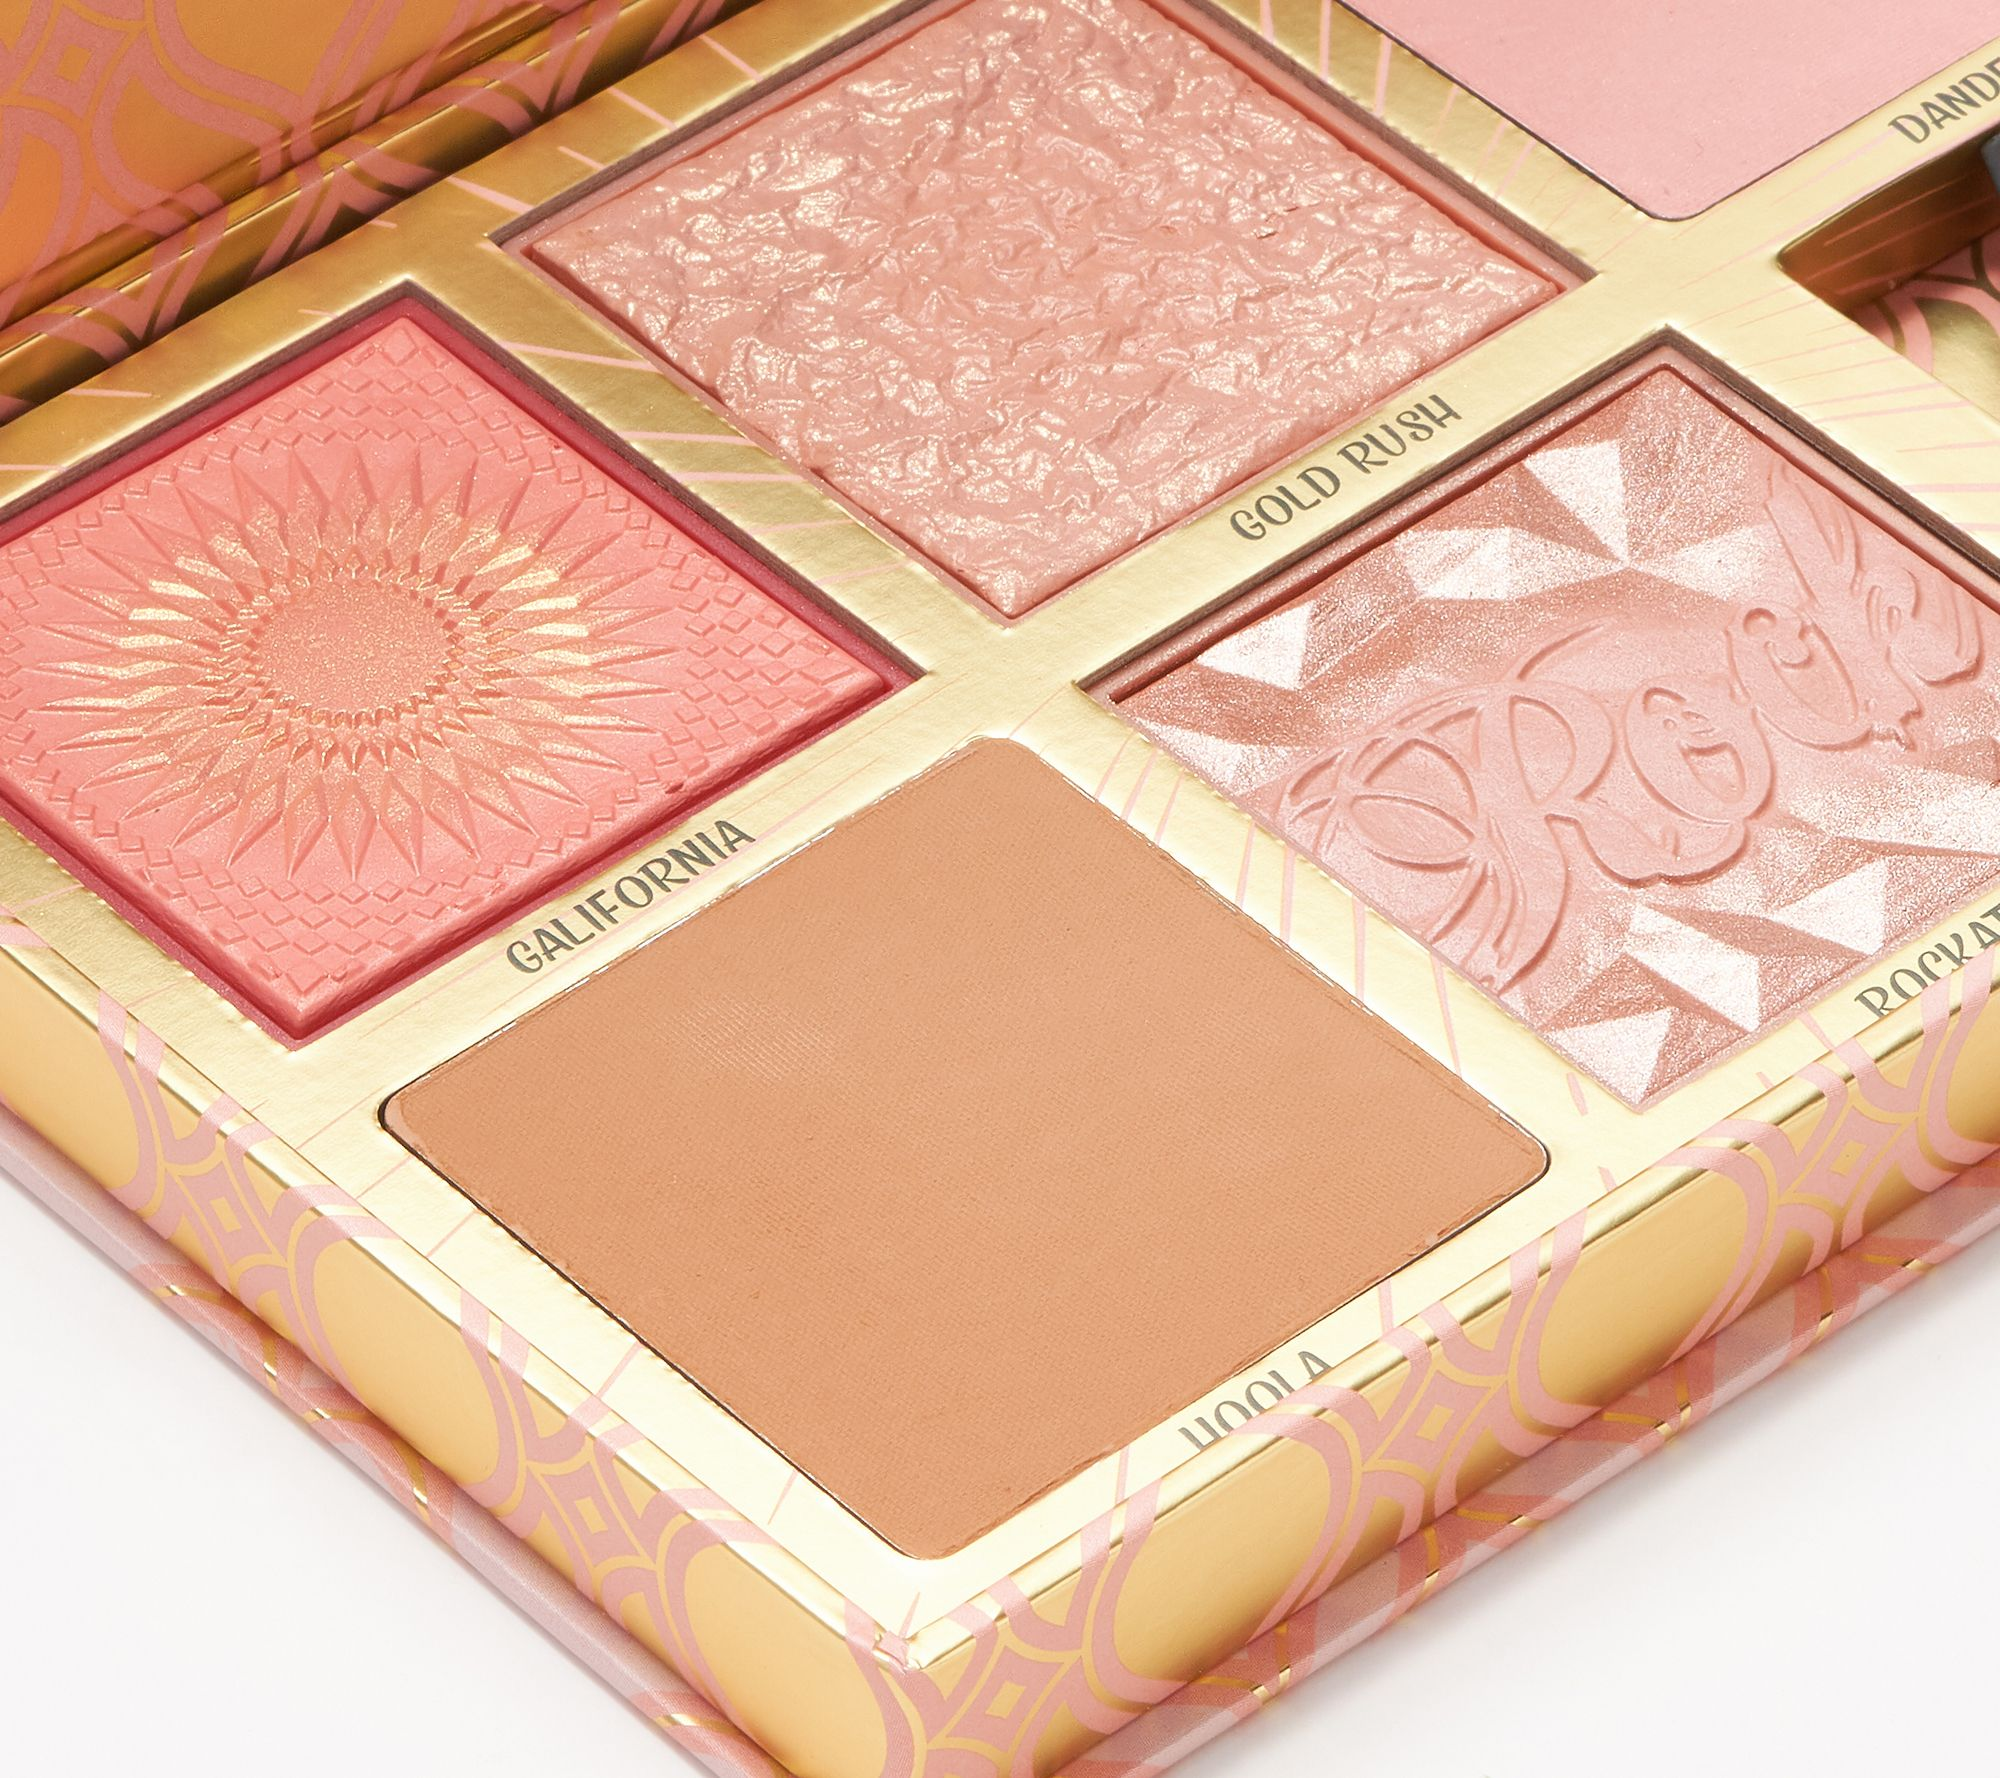 Babe On Board Mini Blush, Bronzer & Highlighter Palette by Benefit #20